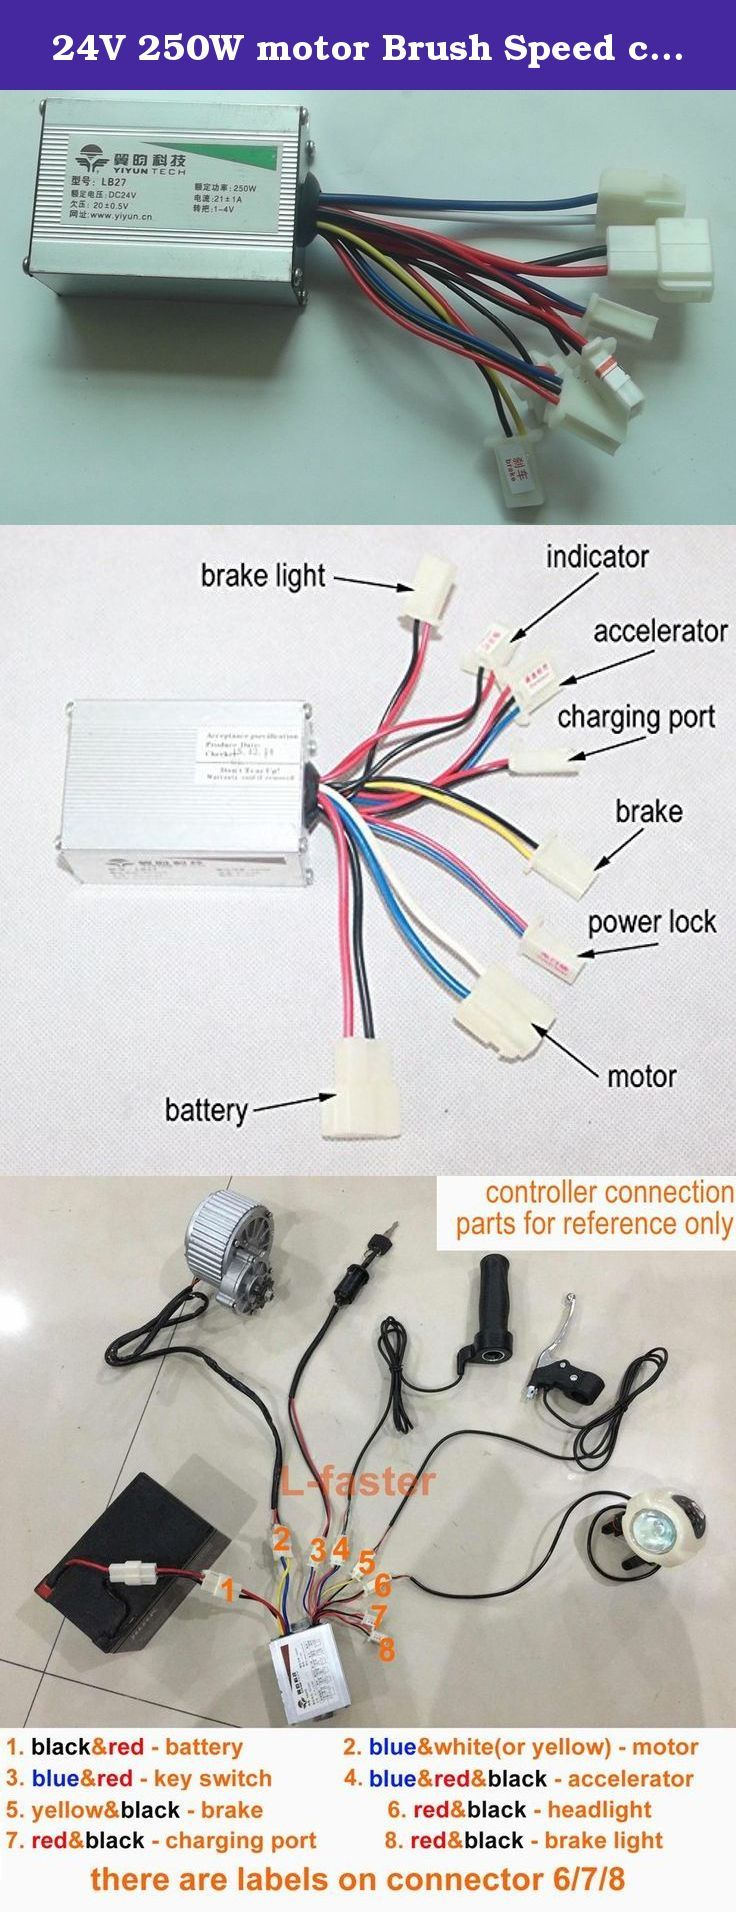 medium resolution of  9cb80219f9d0f2c4e4c59bb2df6f9e9f 24v 250w motor brush speed controller for electric bike bicycle 24 volt scooter wire diagram